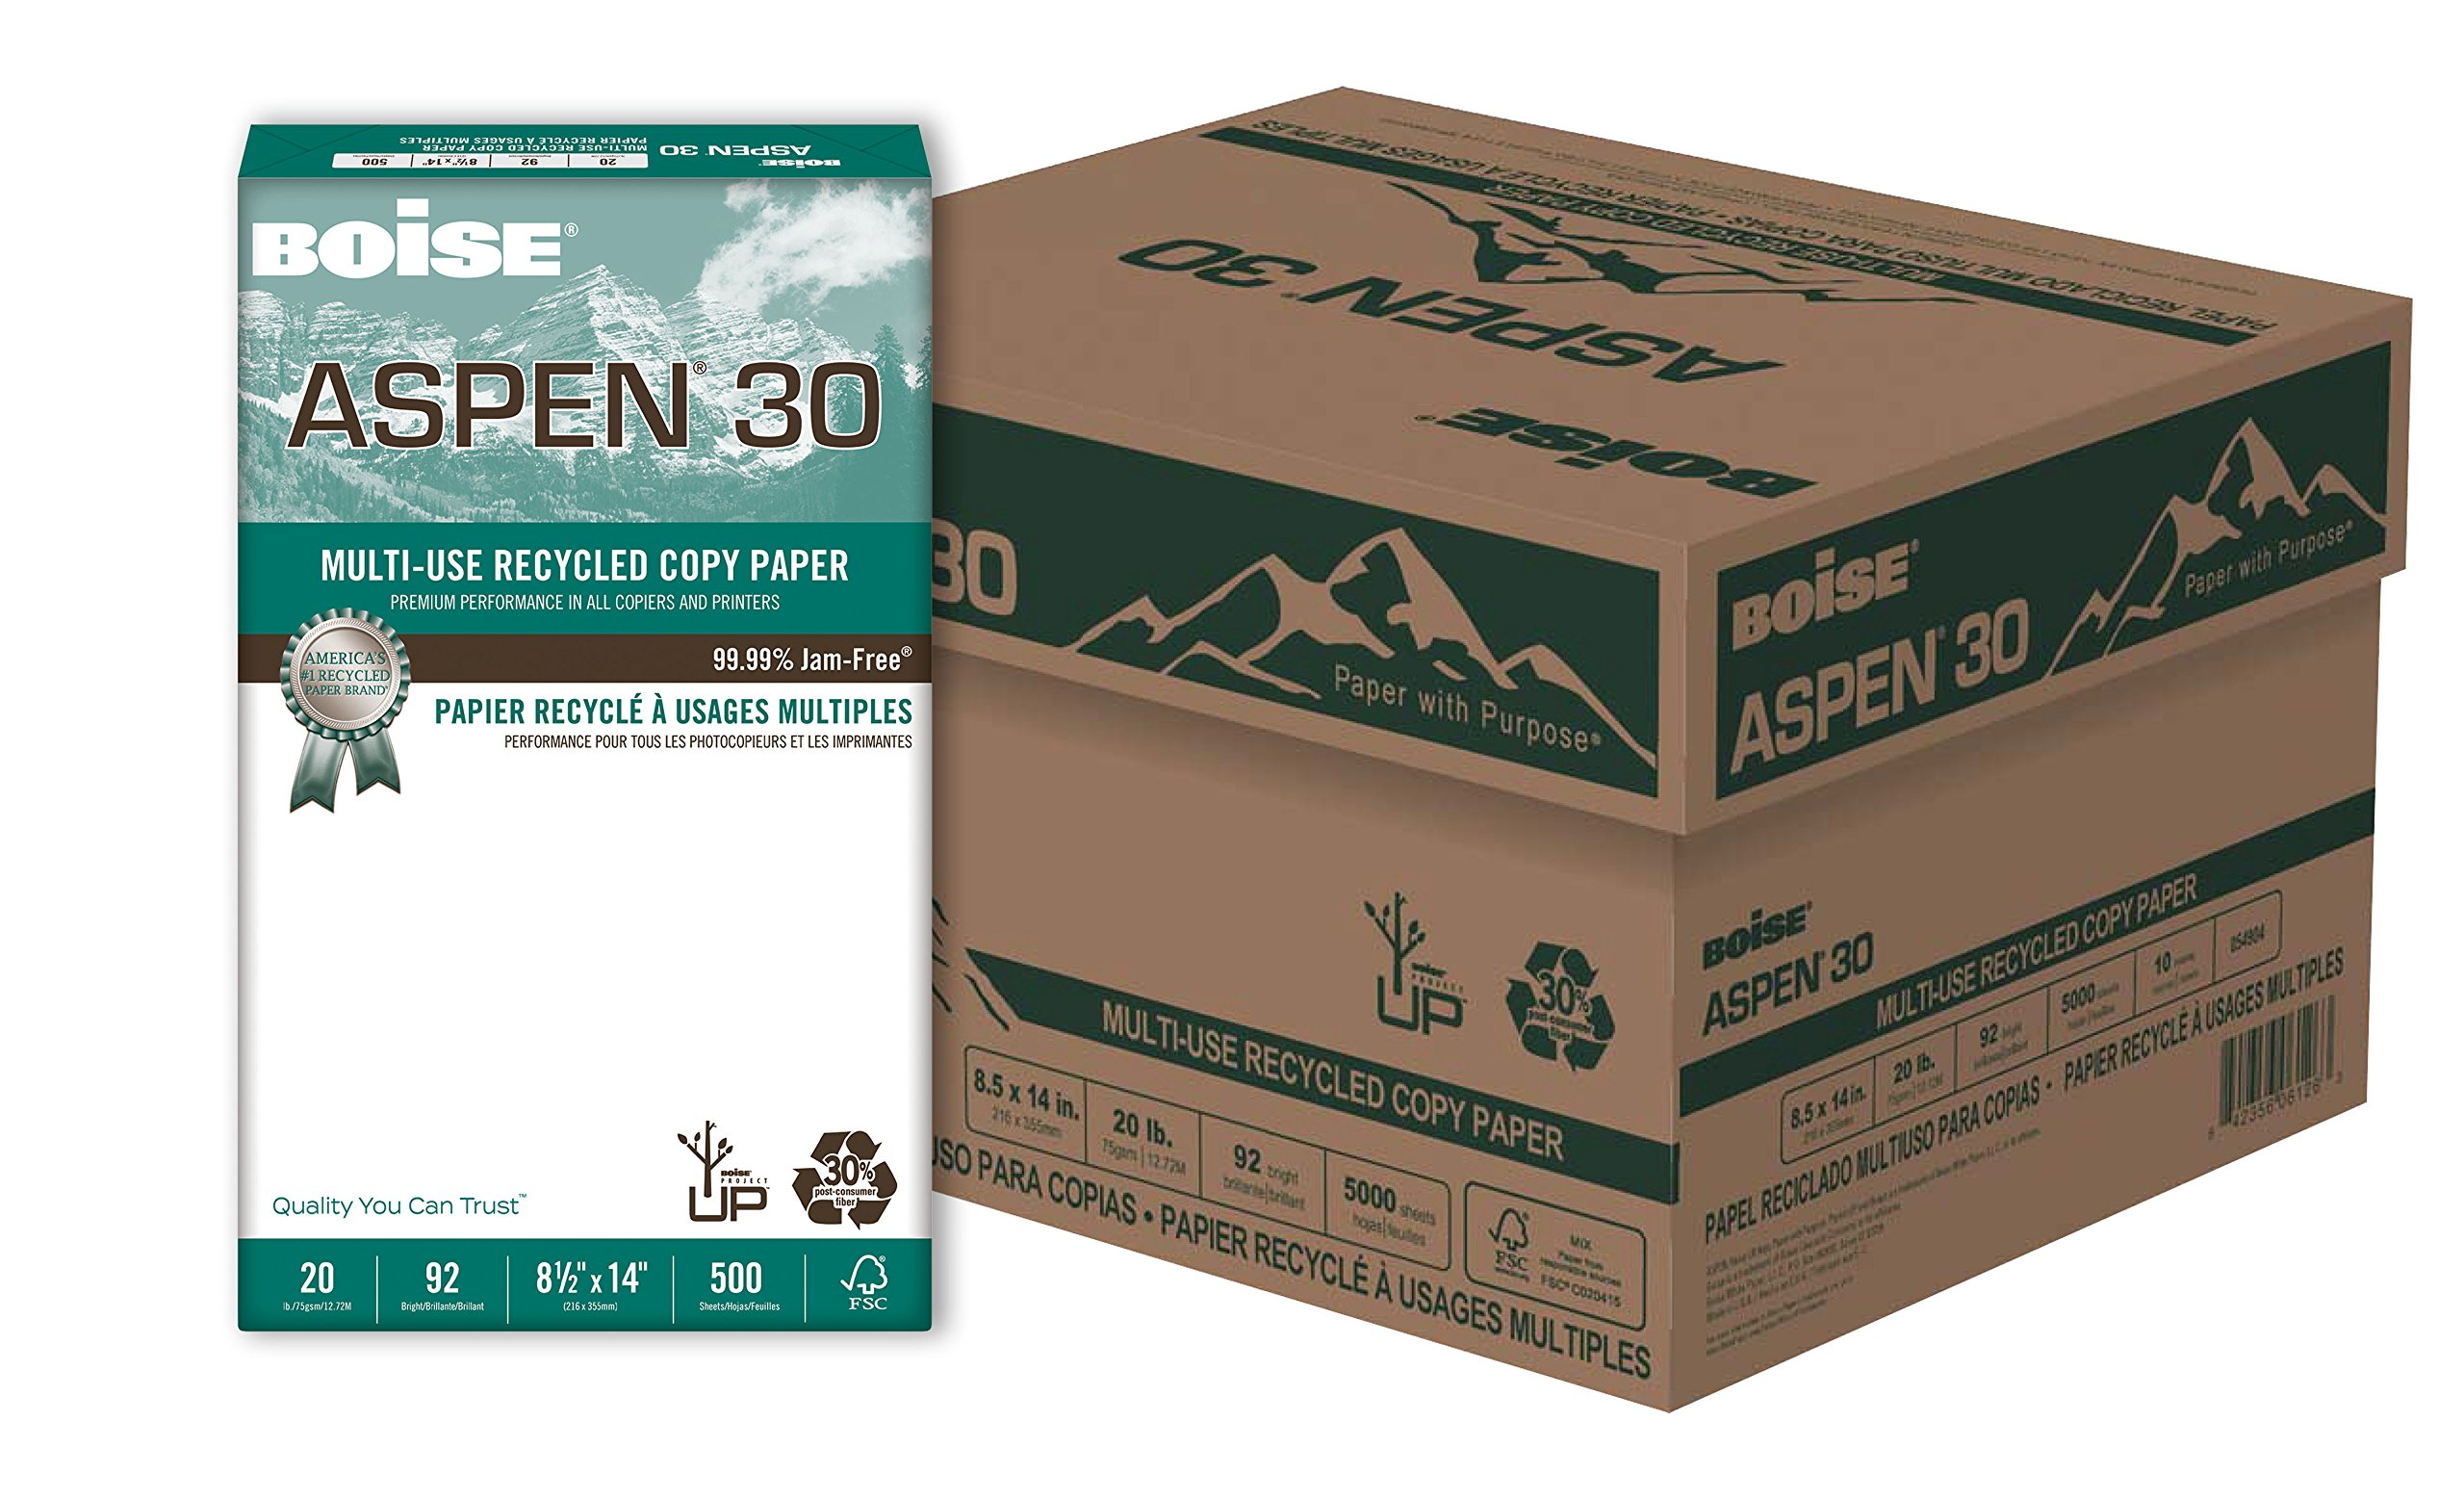 BOISE ASPEN 30% Recycled Multi-Use Copy Paper, 8.5'' x 14'', Legal, 92 Bright, 20 lb, 10 Ream Carton (5,000 Sheets)